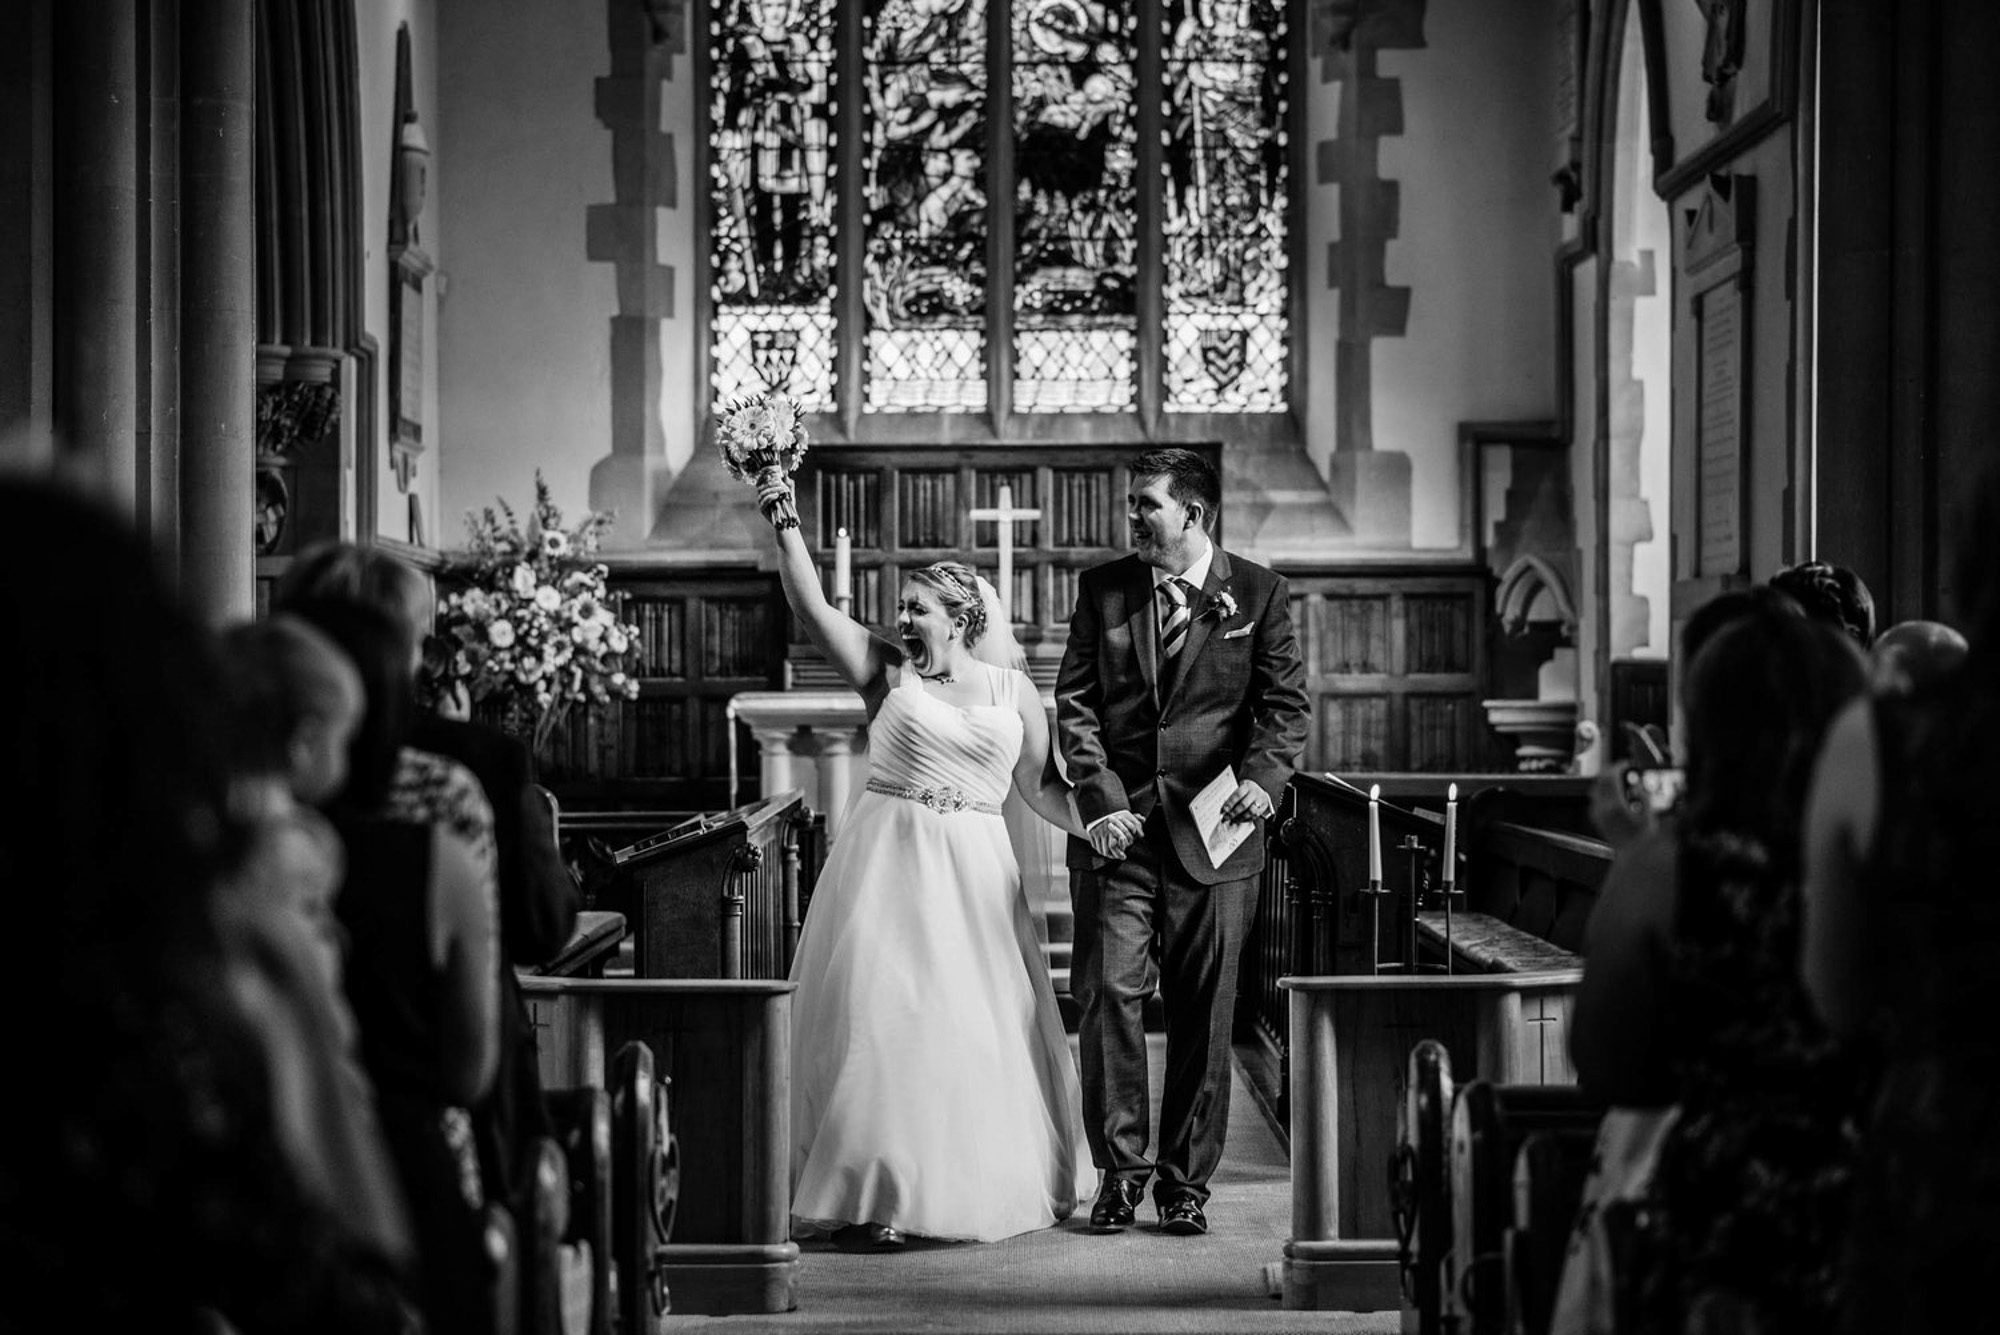 black and White wedding photography-20.jpg